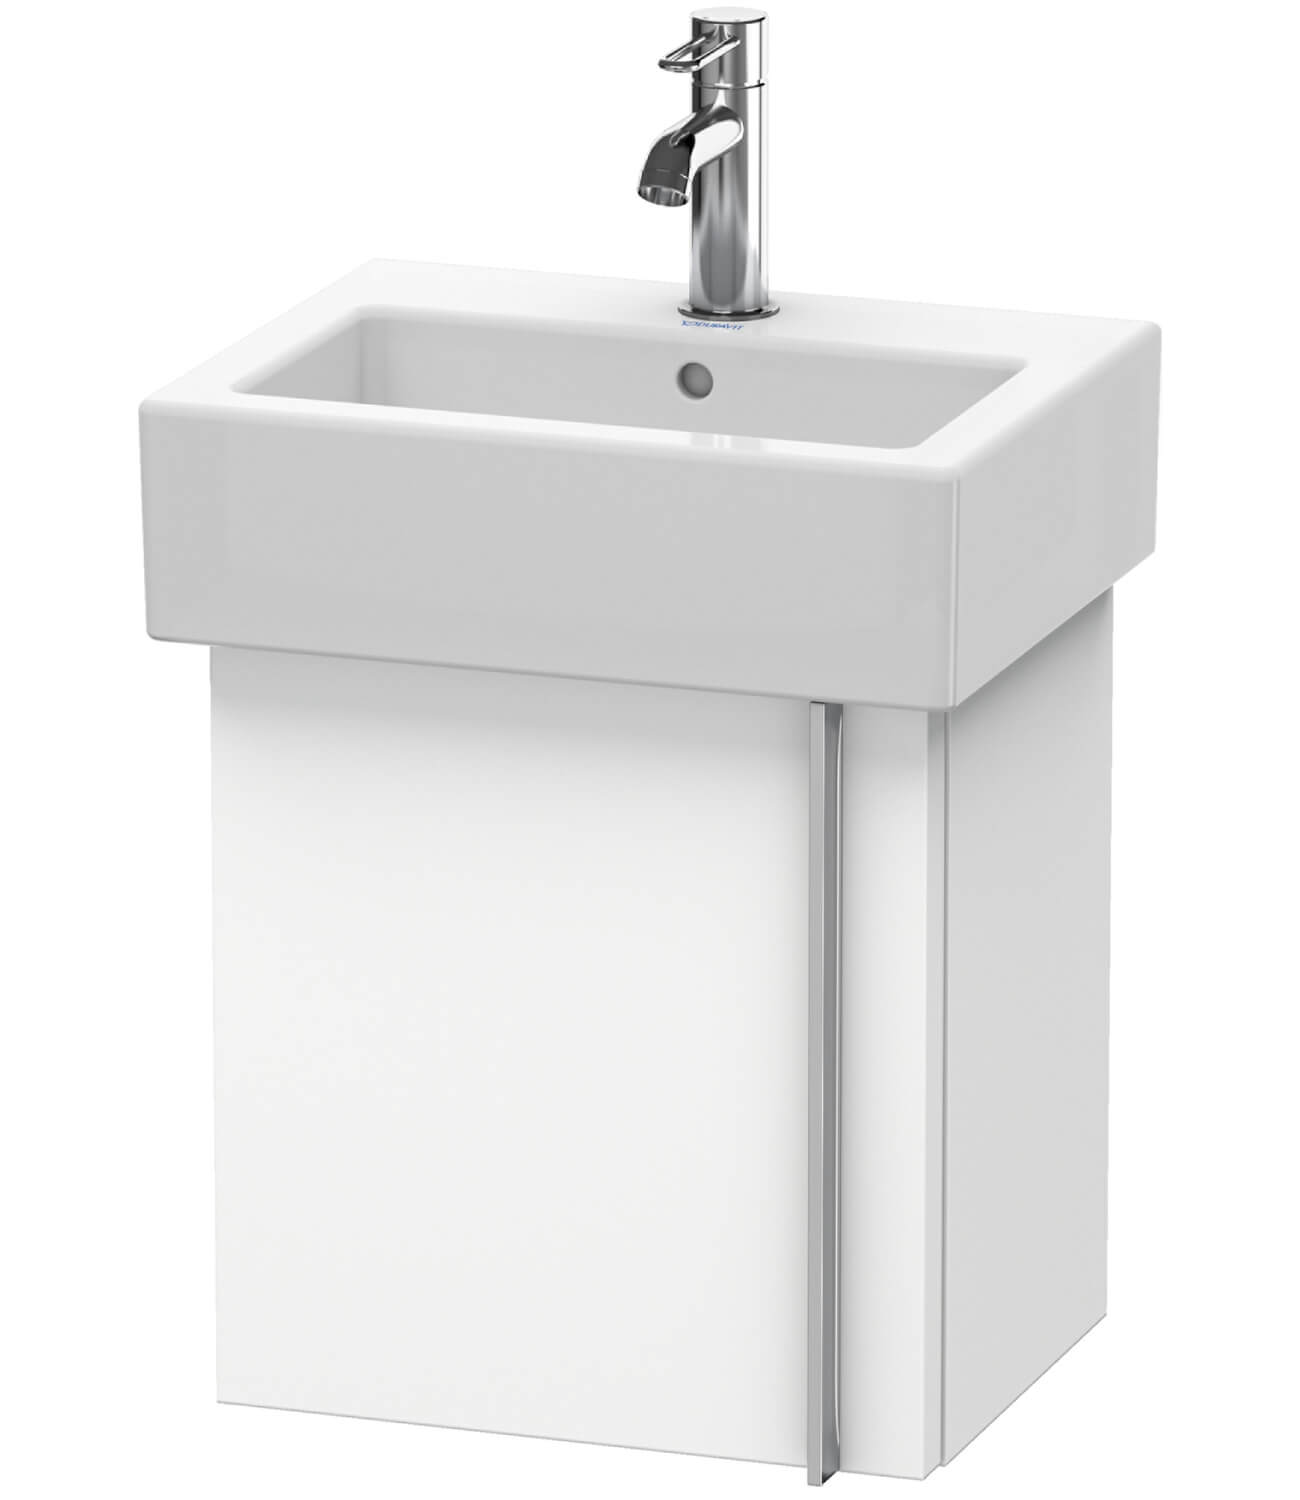 Duravit Waschtisch Vero Air 600 Mm Duravit Vero Sink Wall Mounted